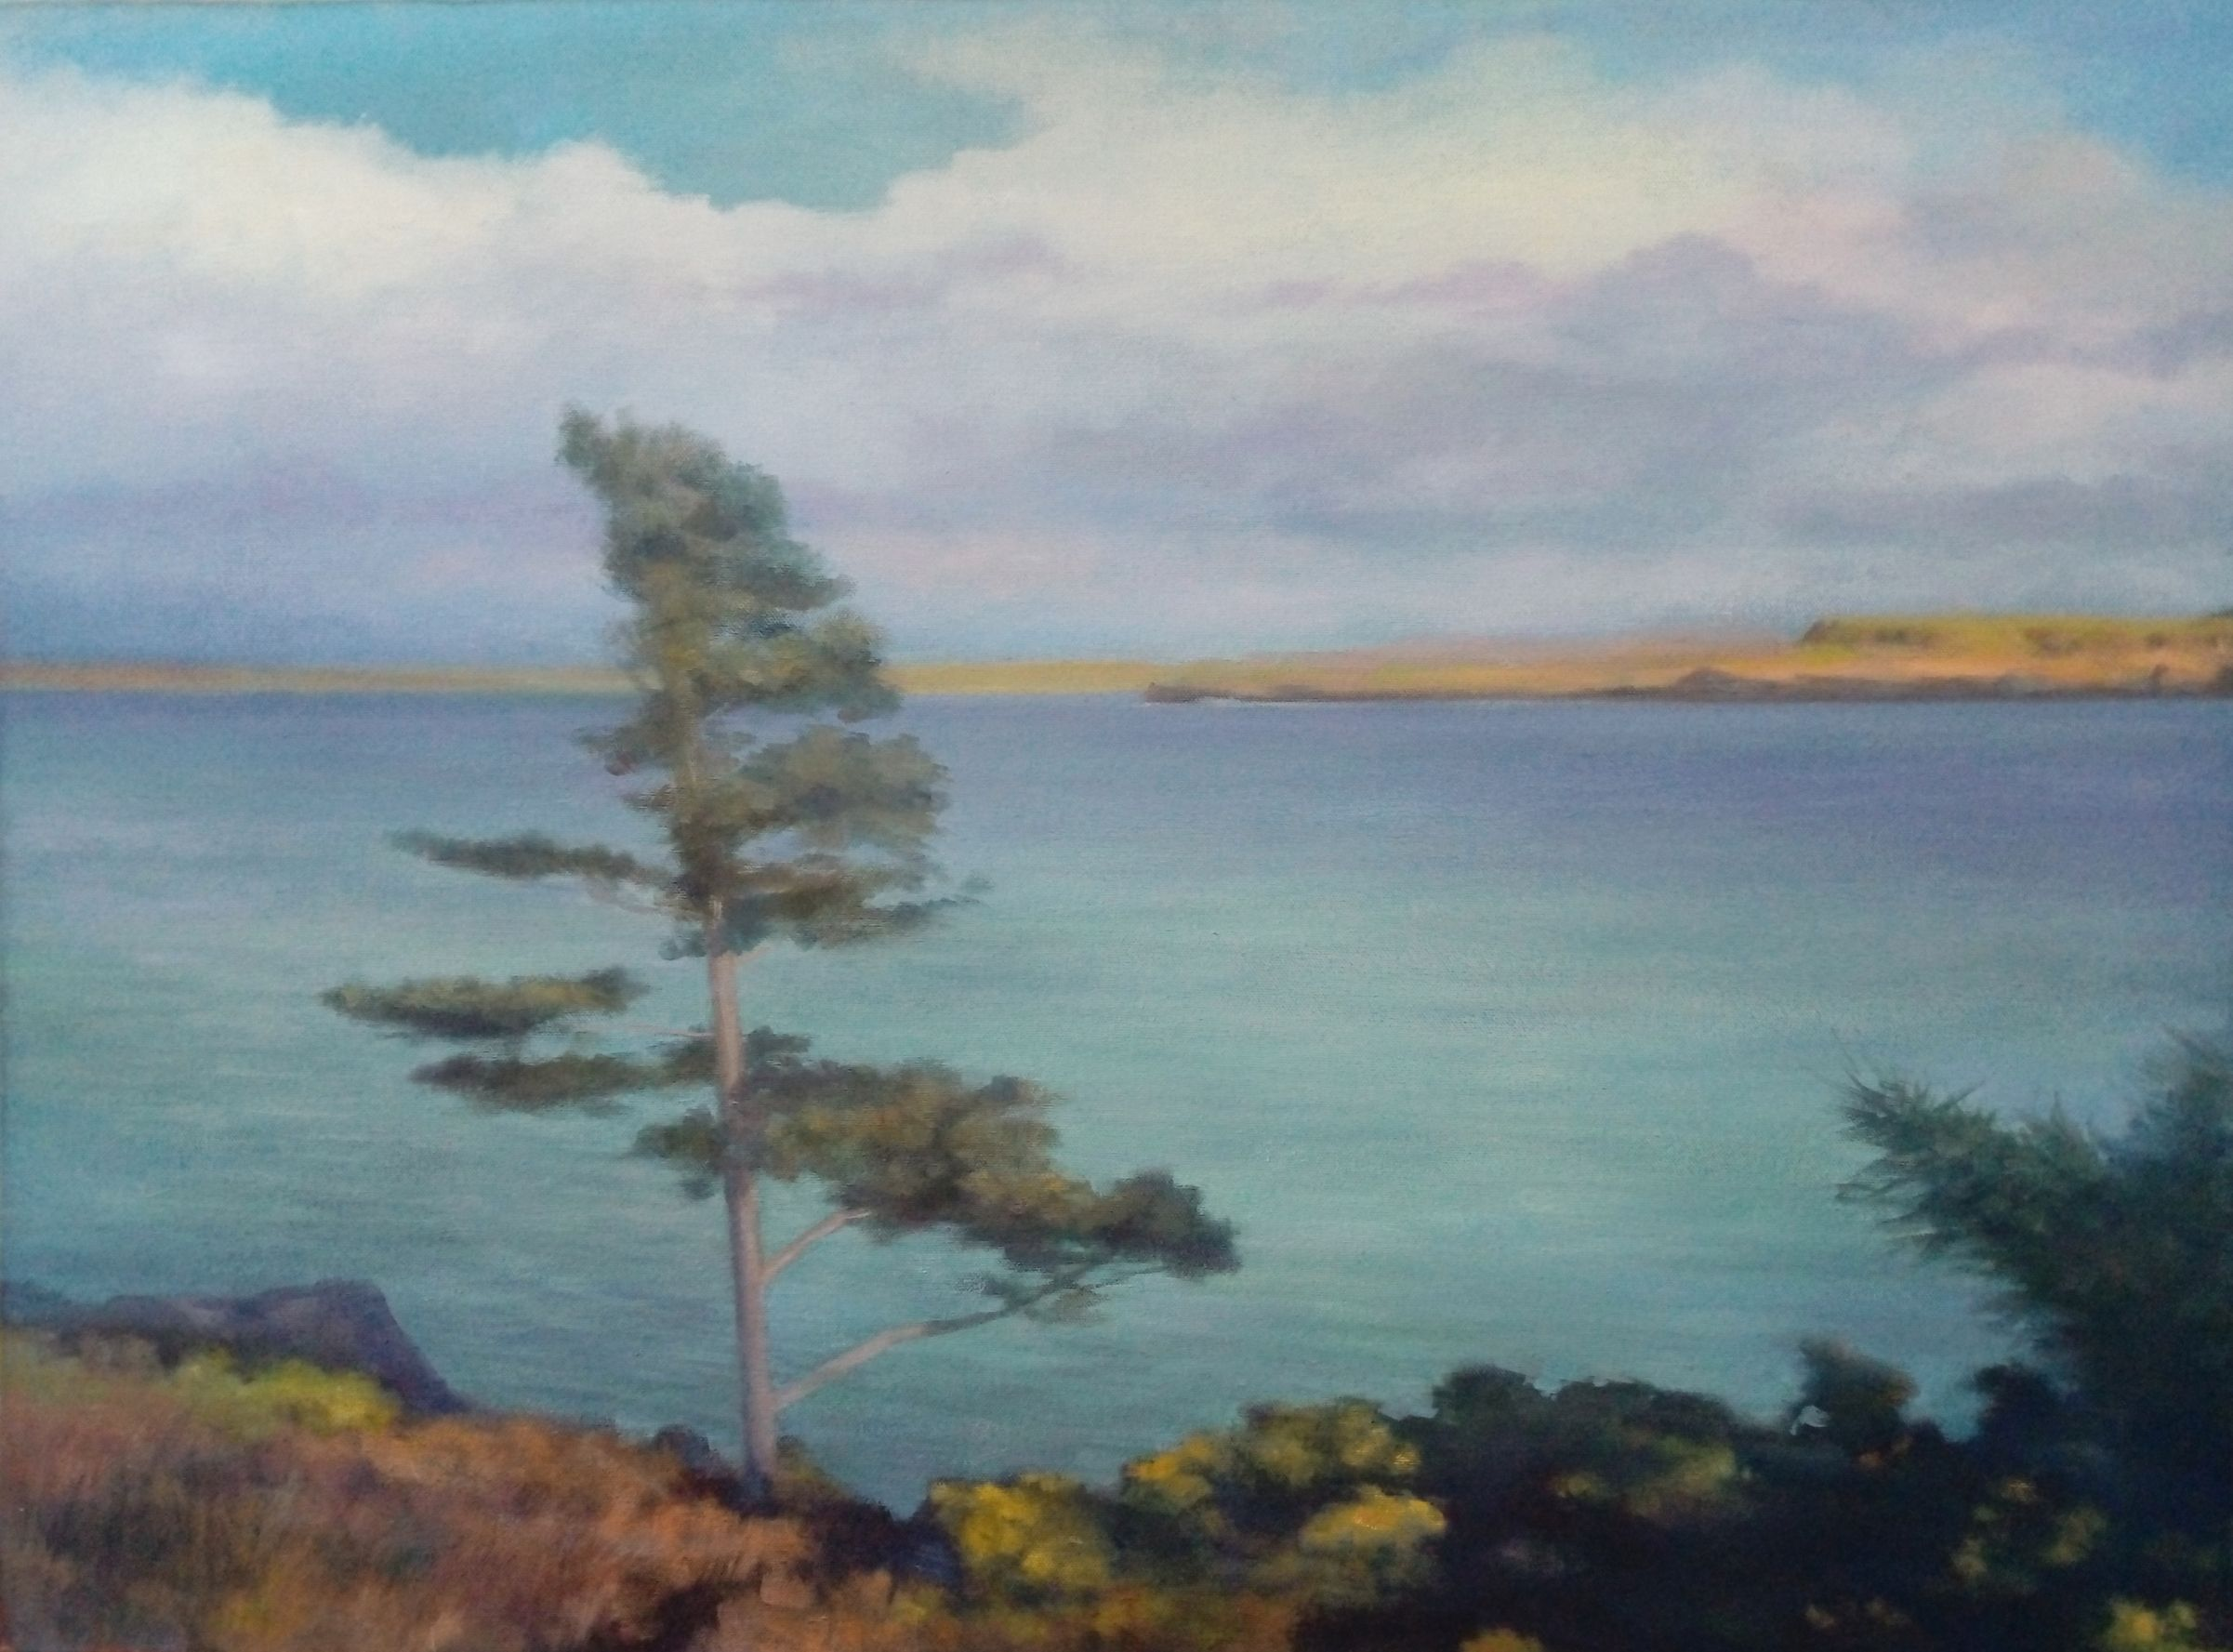 Marble Hill Oil On Canvas Panel 30 X 22 Morgan Ferriter 2018 Art Paintings Wildatlanticway Donegal Ireland Instaart Art Painting Donegal